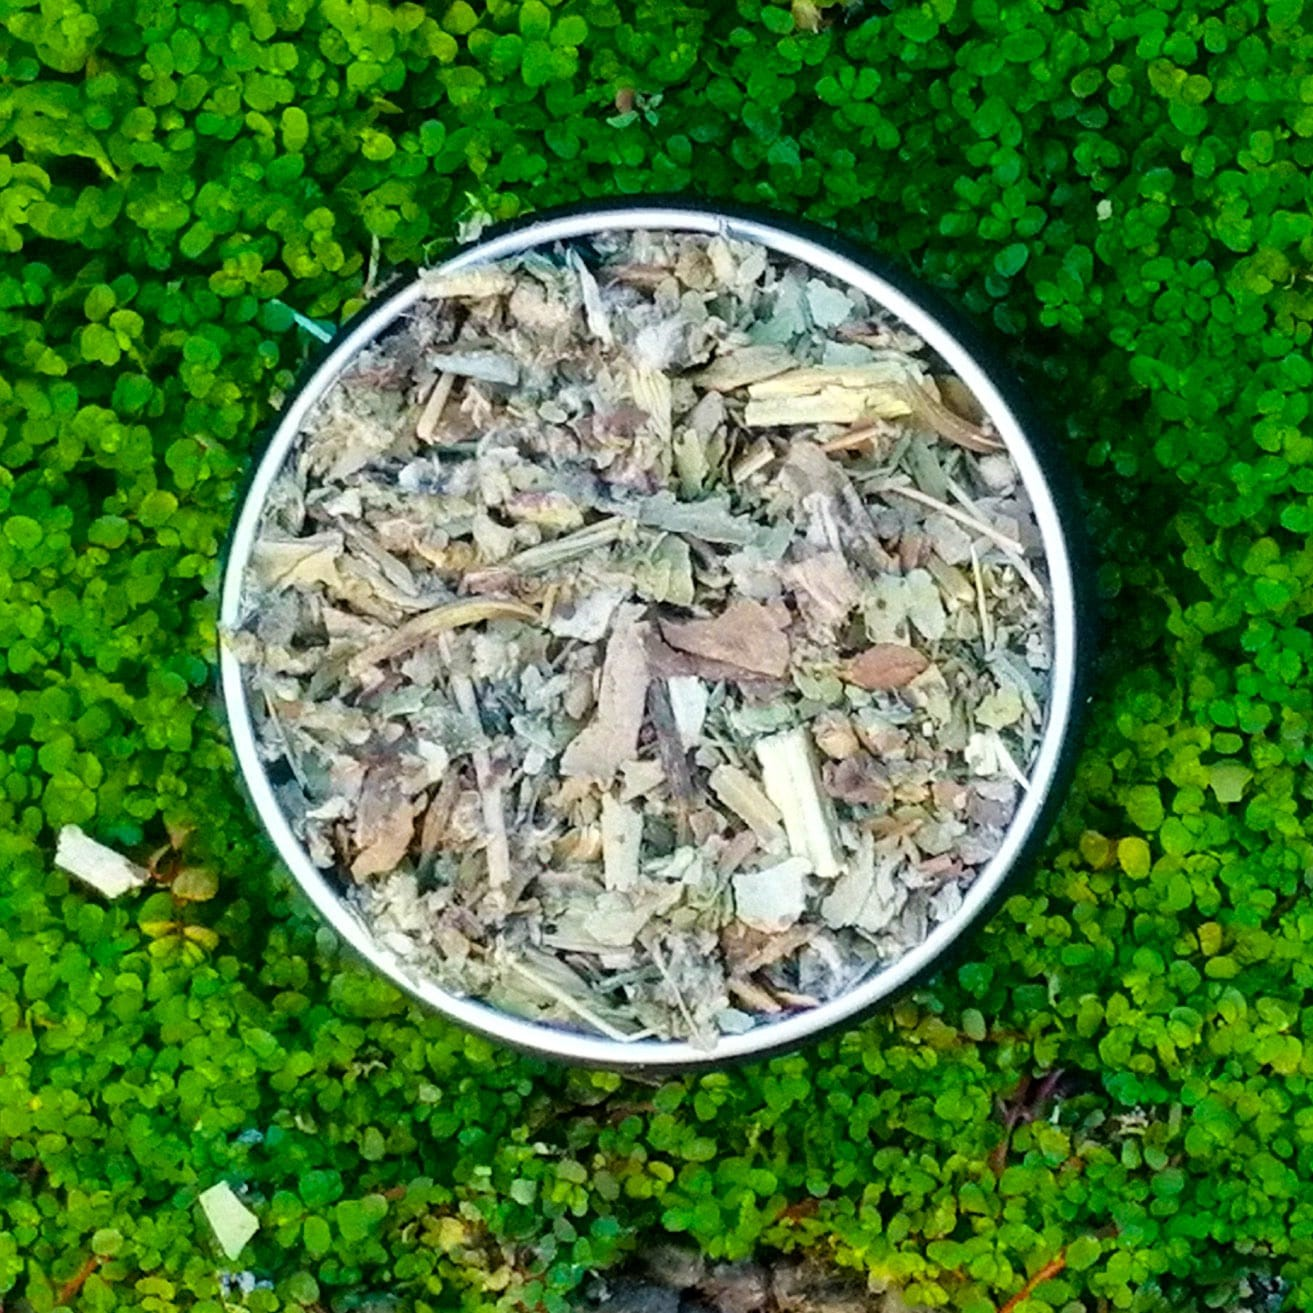 Herbology's Tobacco Replacement #1 is a day time smoke. It will kill the cravings, diminish agitation and irritability and soothe your nerves.